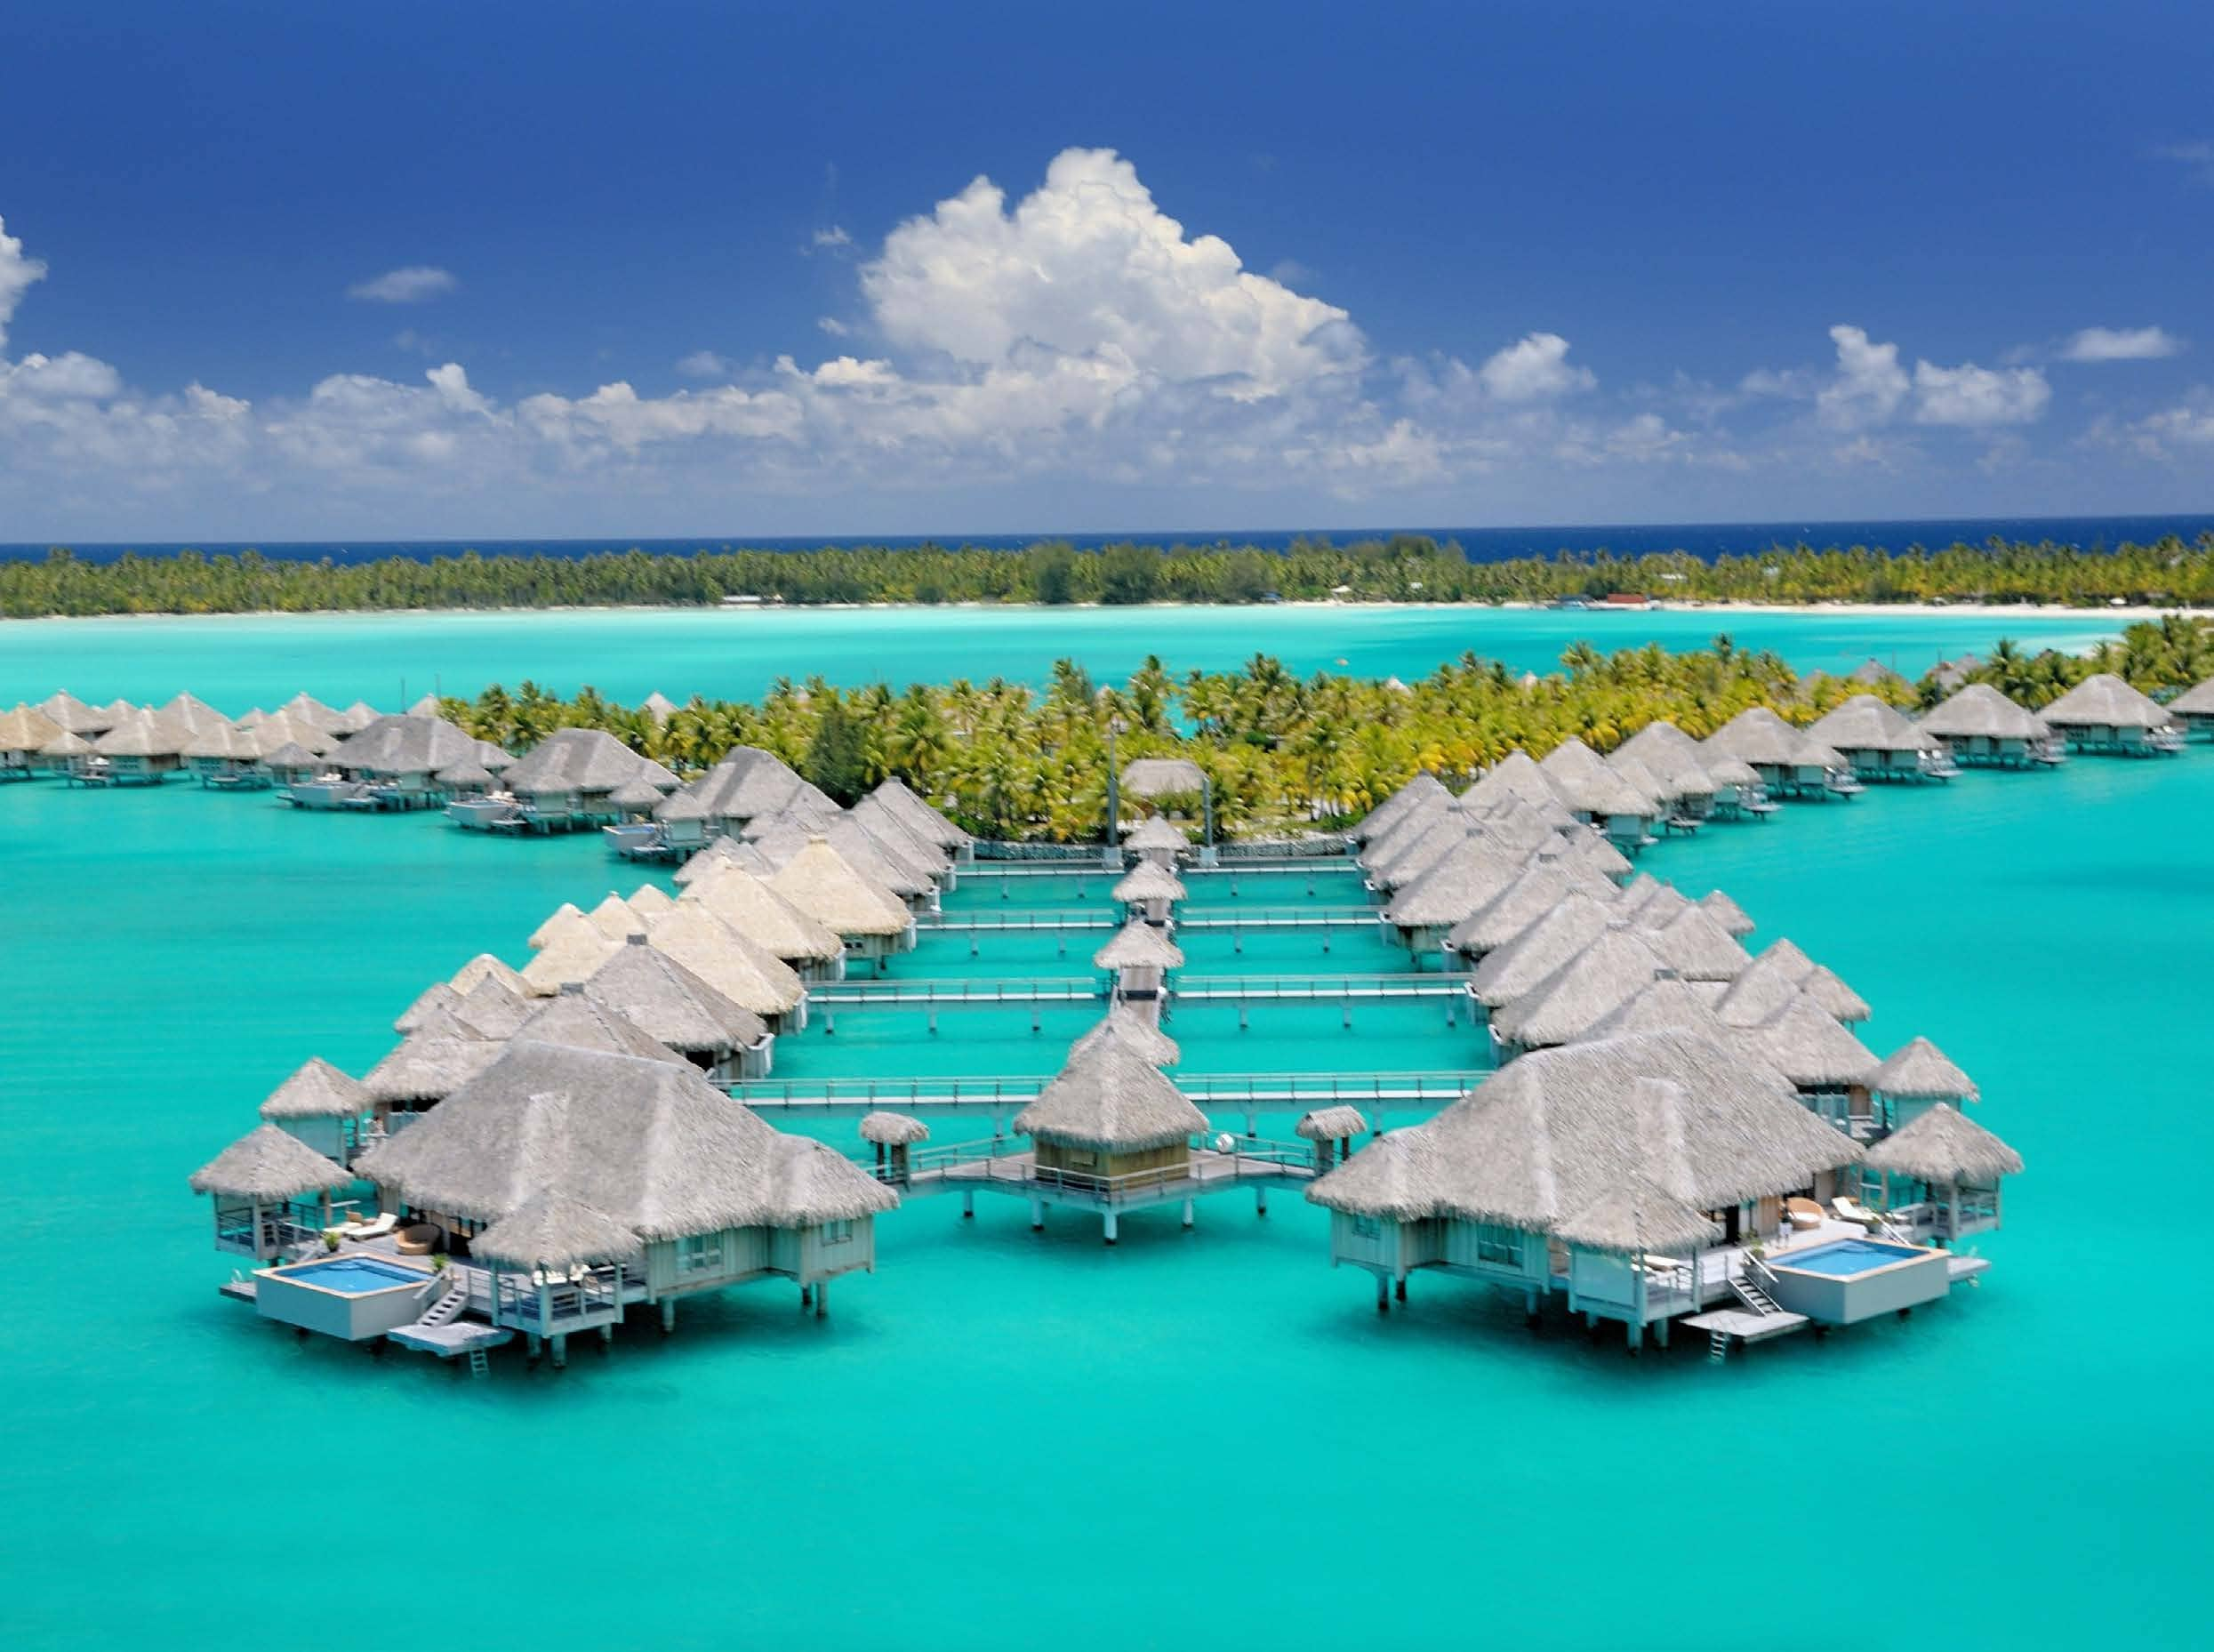 Most Romantic Overwater Bungalows For Honeymoon Couples